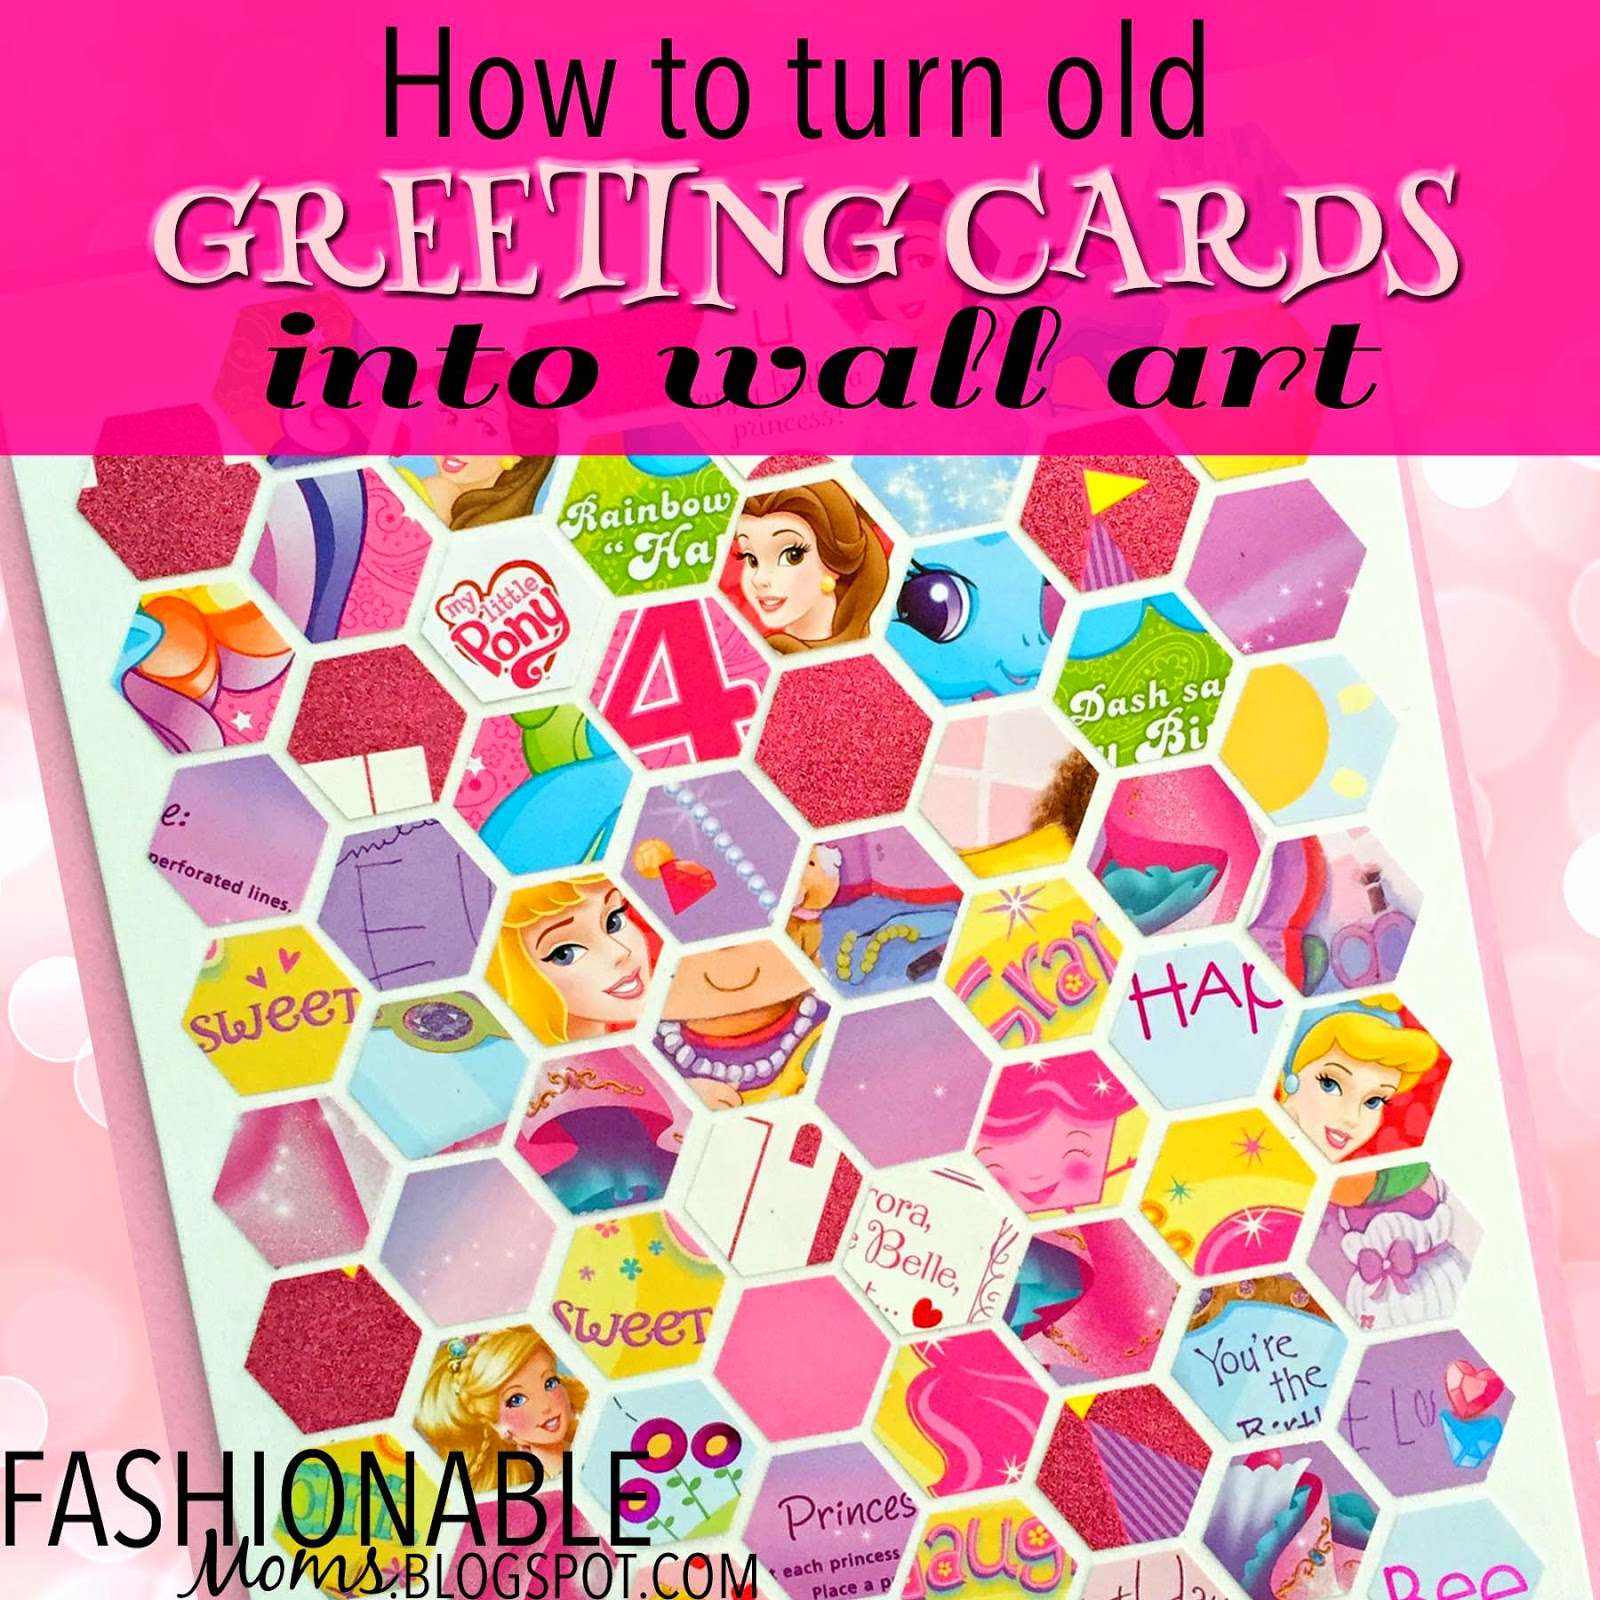 My fashionable designs how to turn old greeting cards into wall art how to turn old greeting cards into wall art kristyandbryce Images